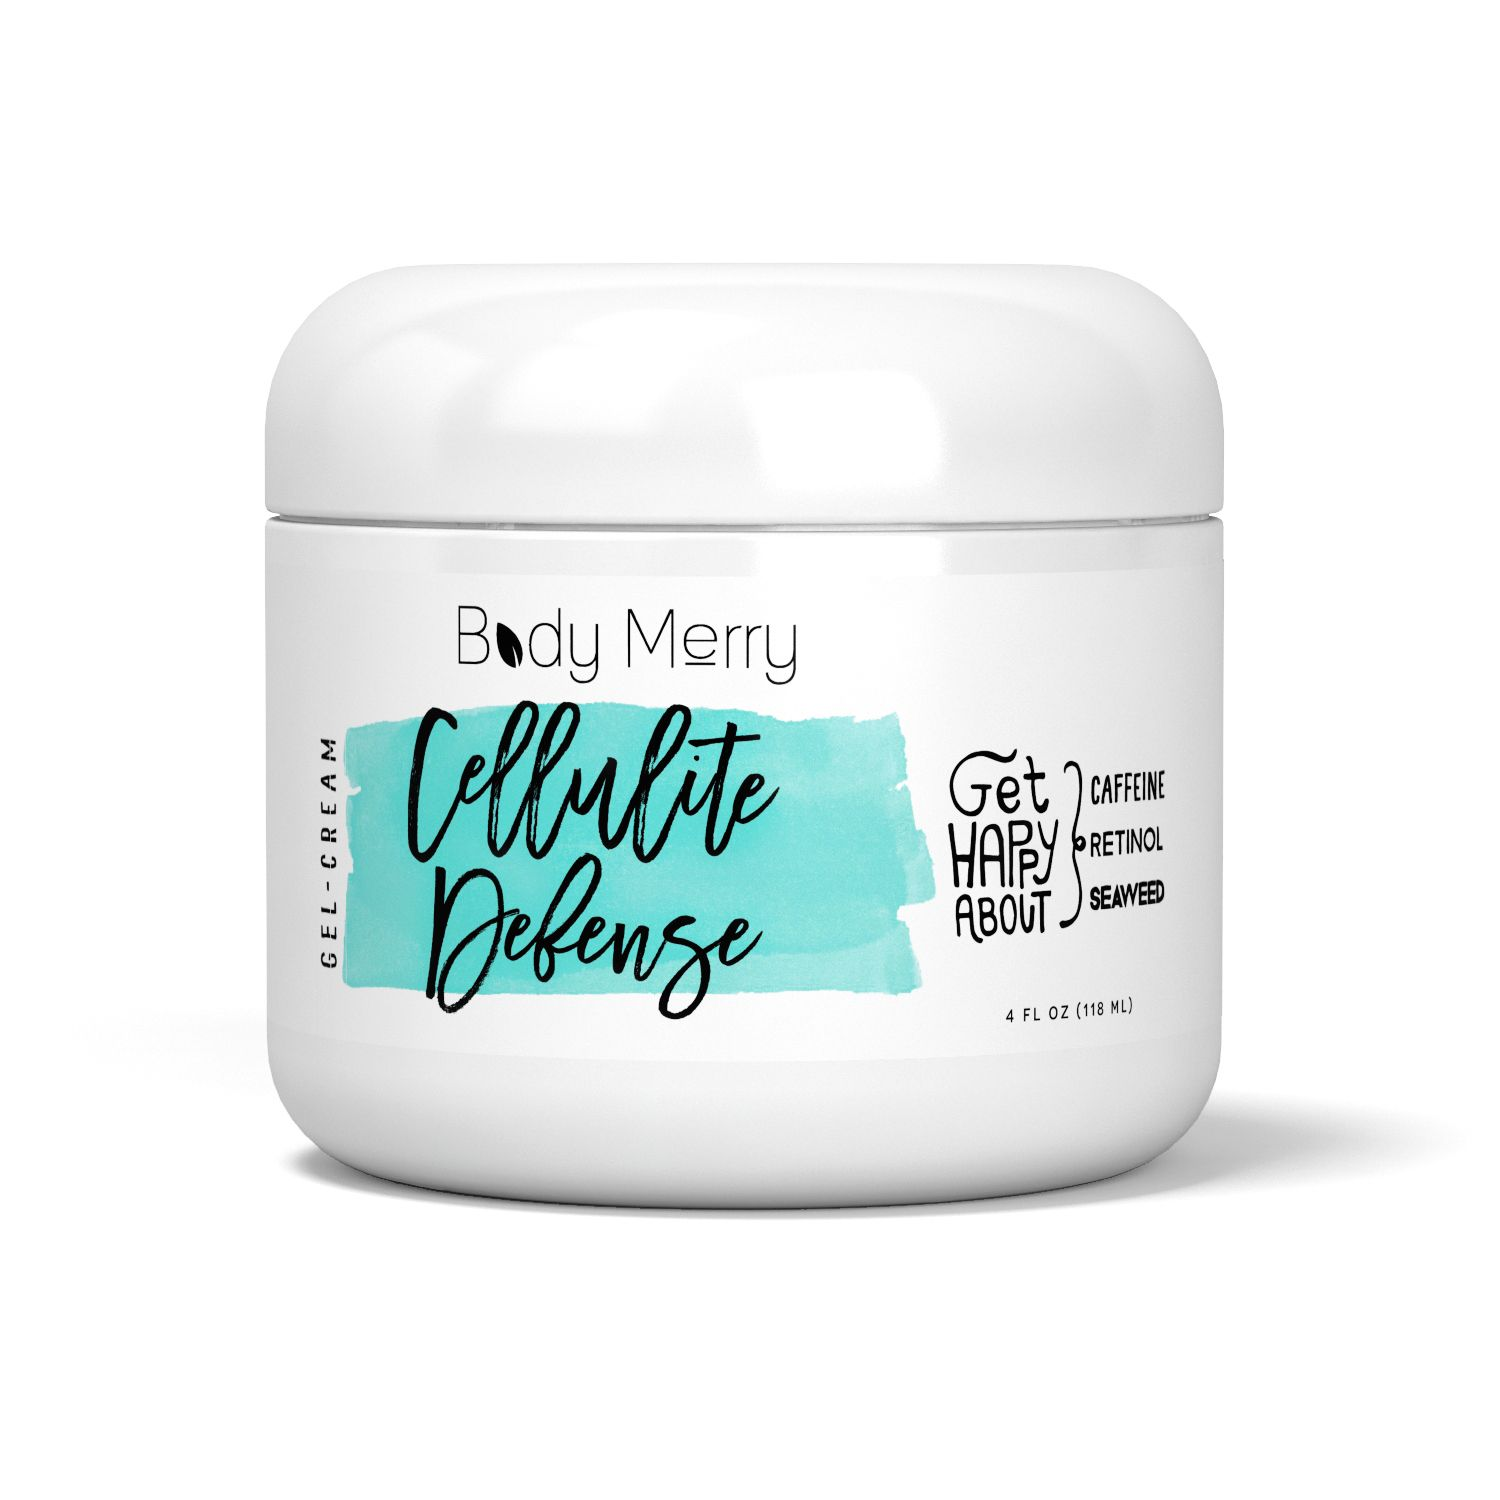 Description Face beach and bikini season head on with our firming and toning cellulite gel cream and keep your body tight all year long. With elements like caffeine and cayenne that activate circulati